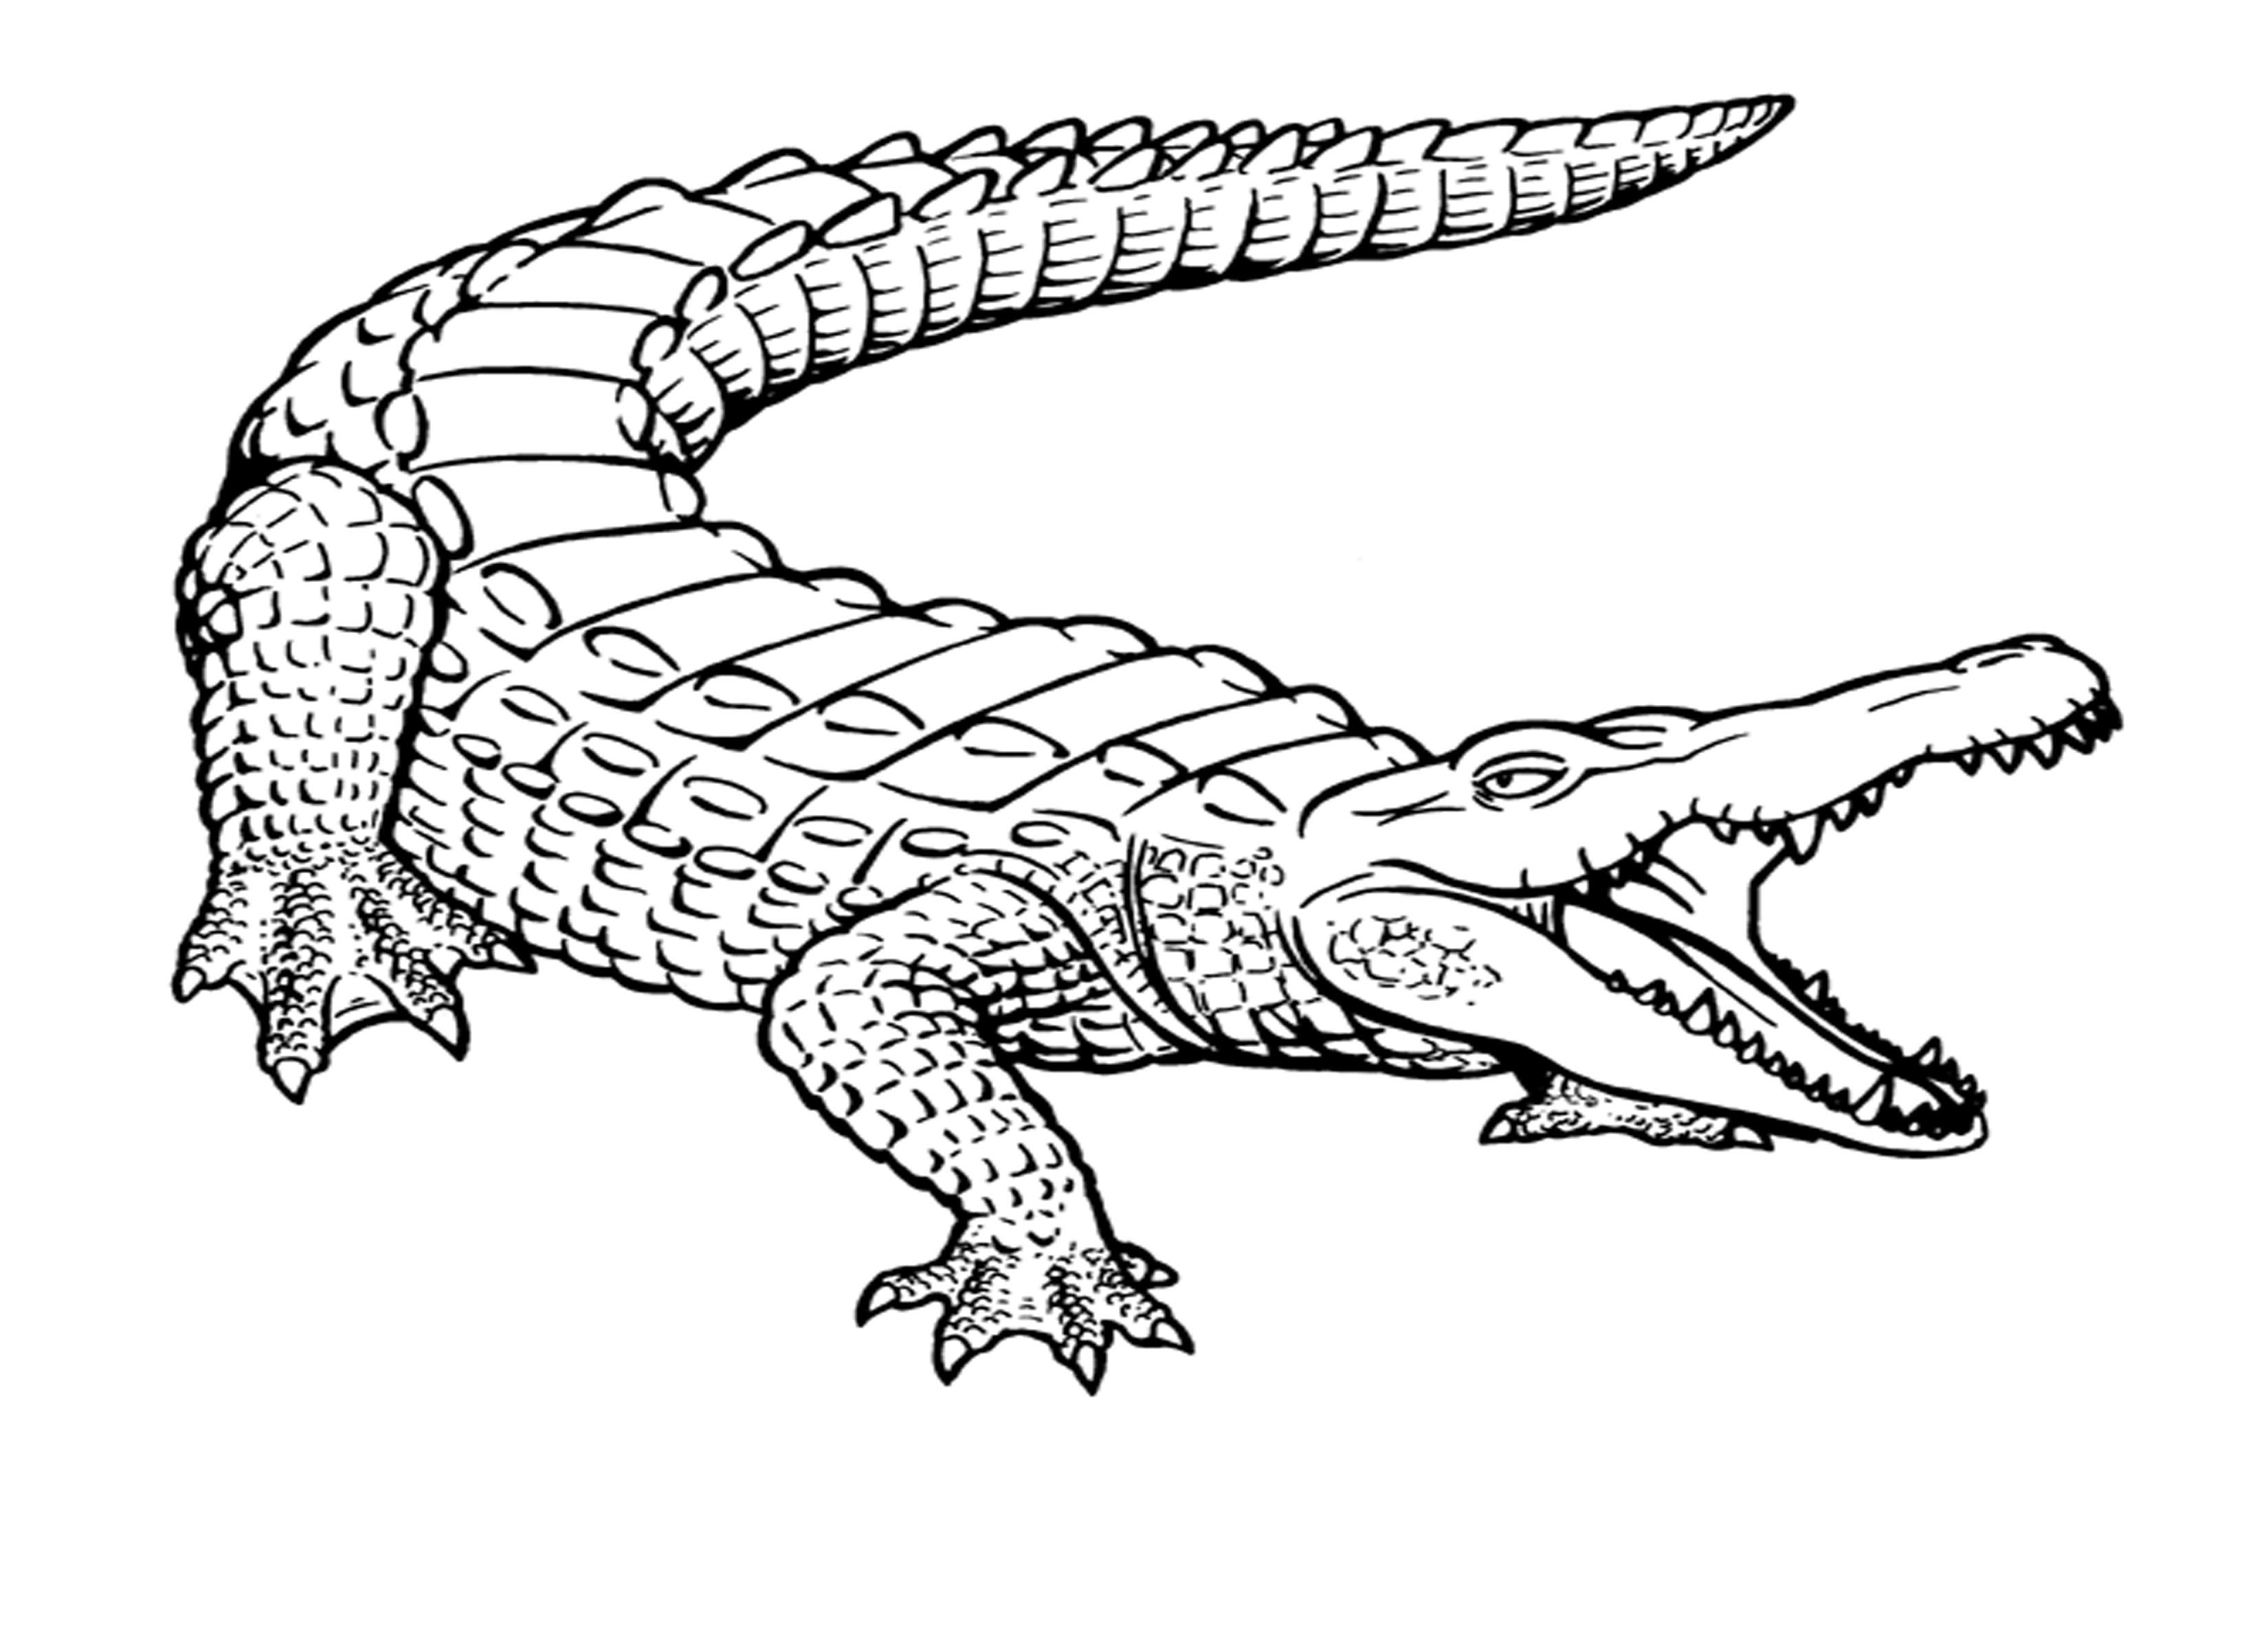 outline picture of crocodile crocodile outline drawing free download on clipartmag outline of picture crocodile